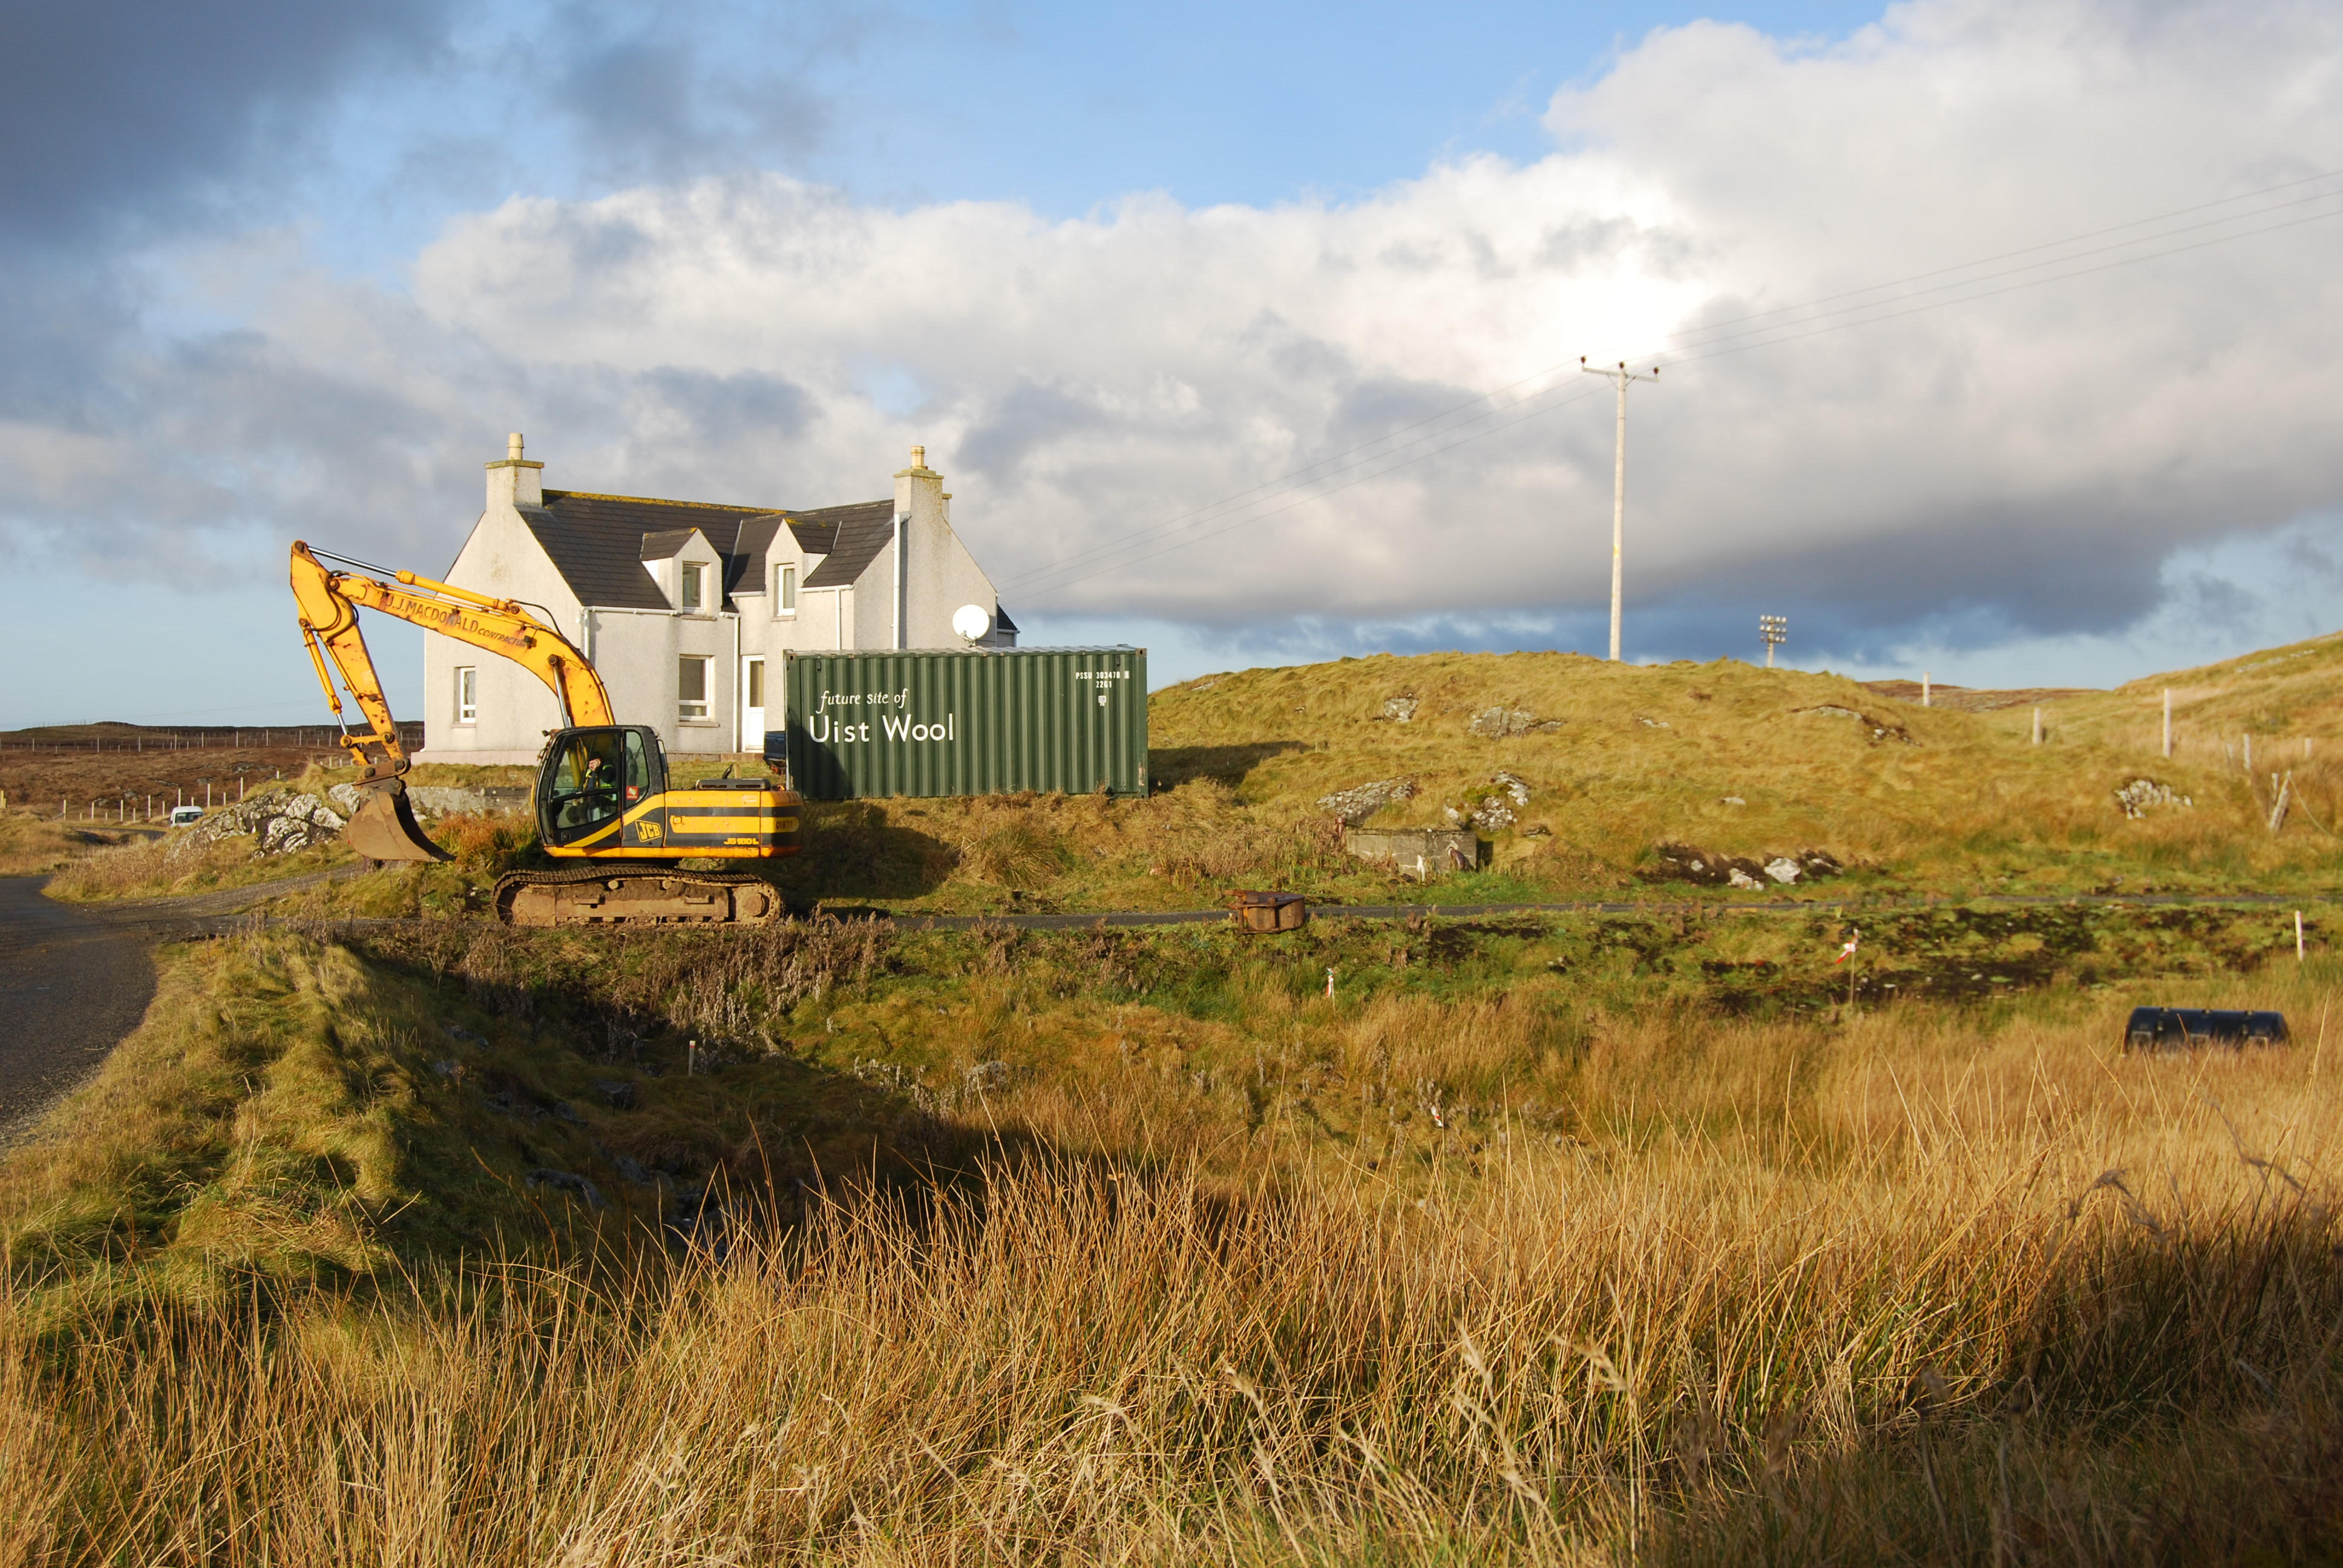 uist-6-construction-starts-on-the-mill-10-december-2012-the-house-was-the-base-for-uist-wool-2012-16